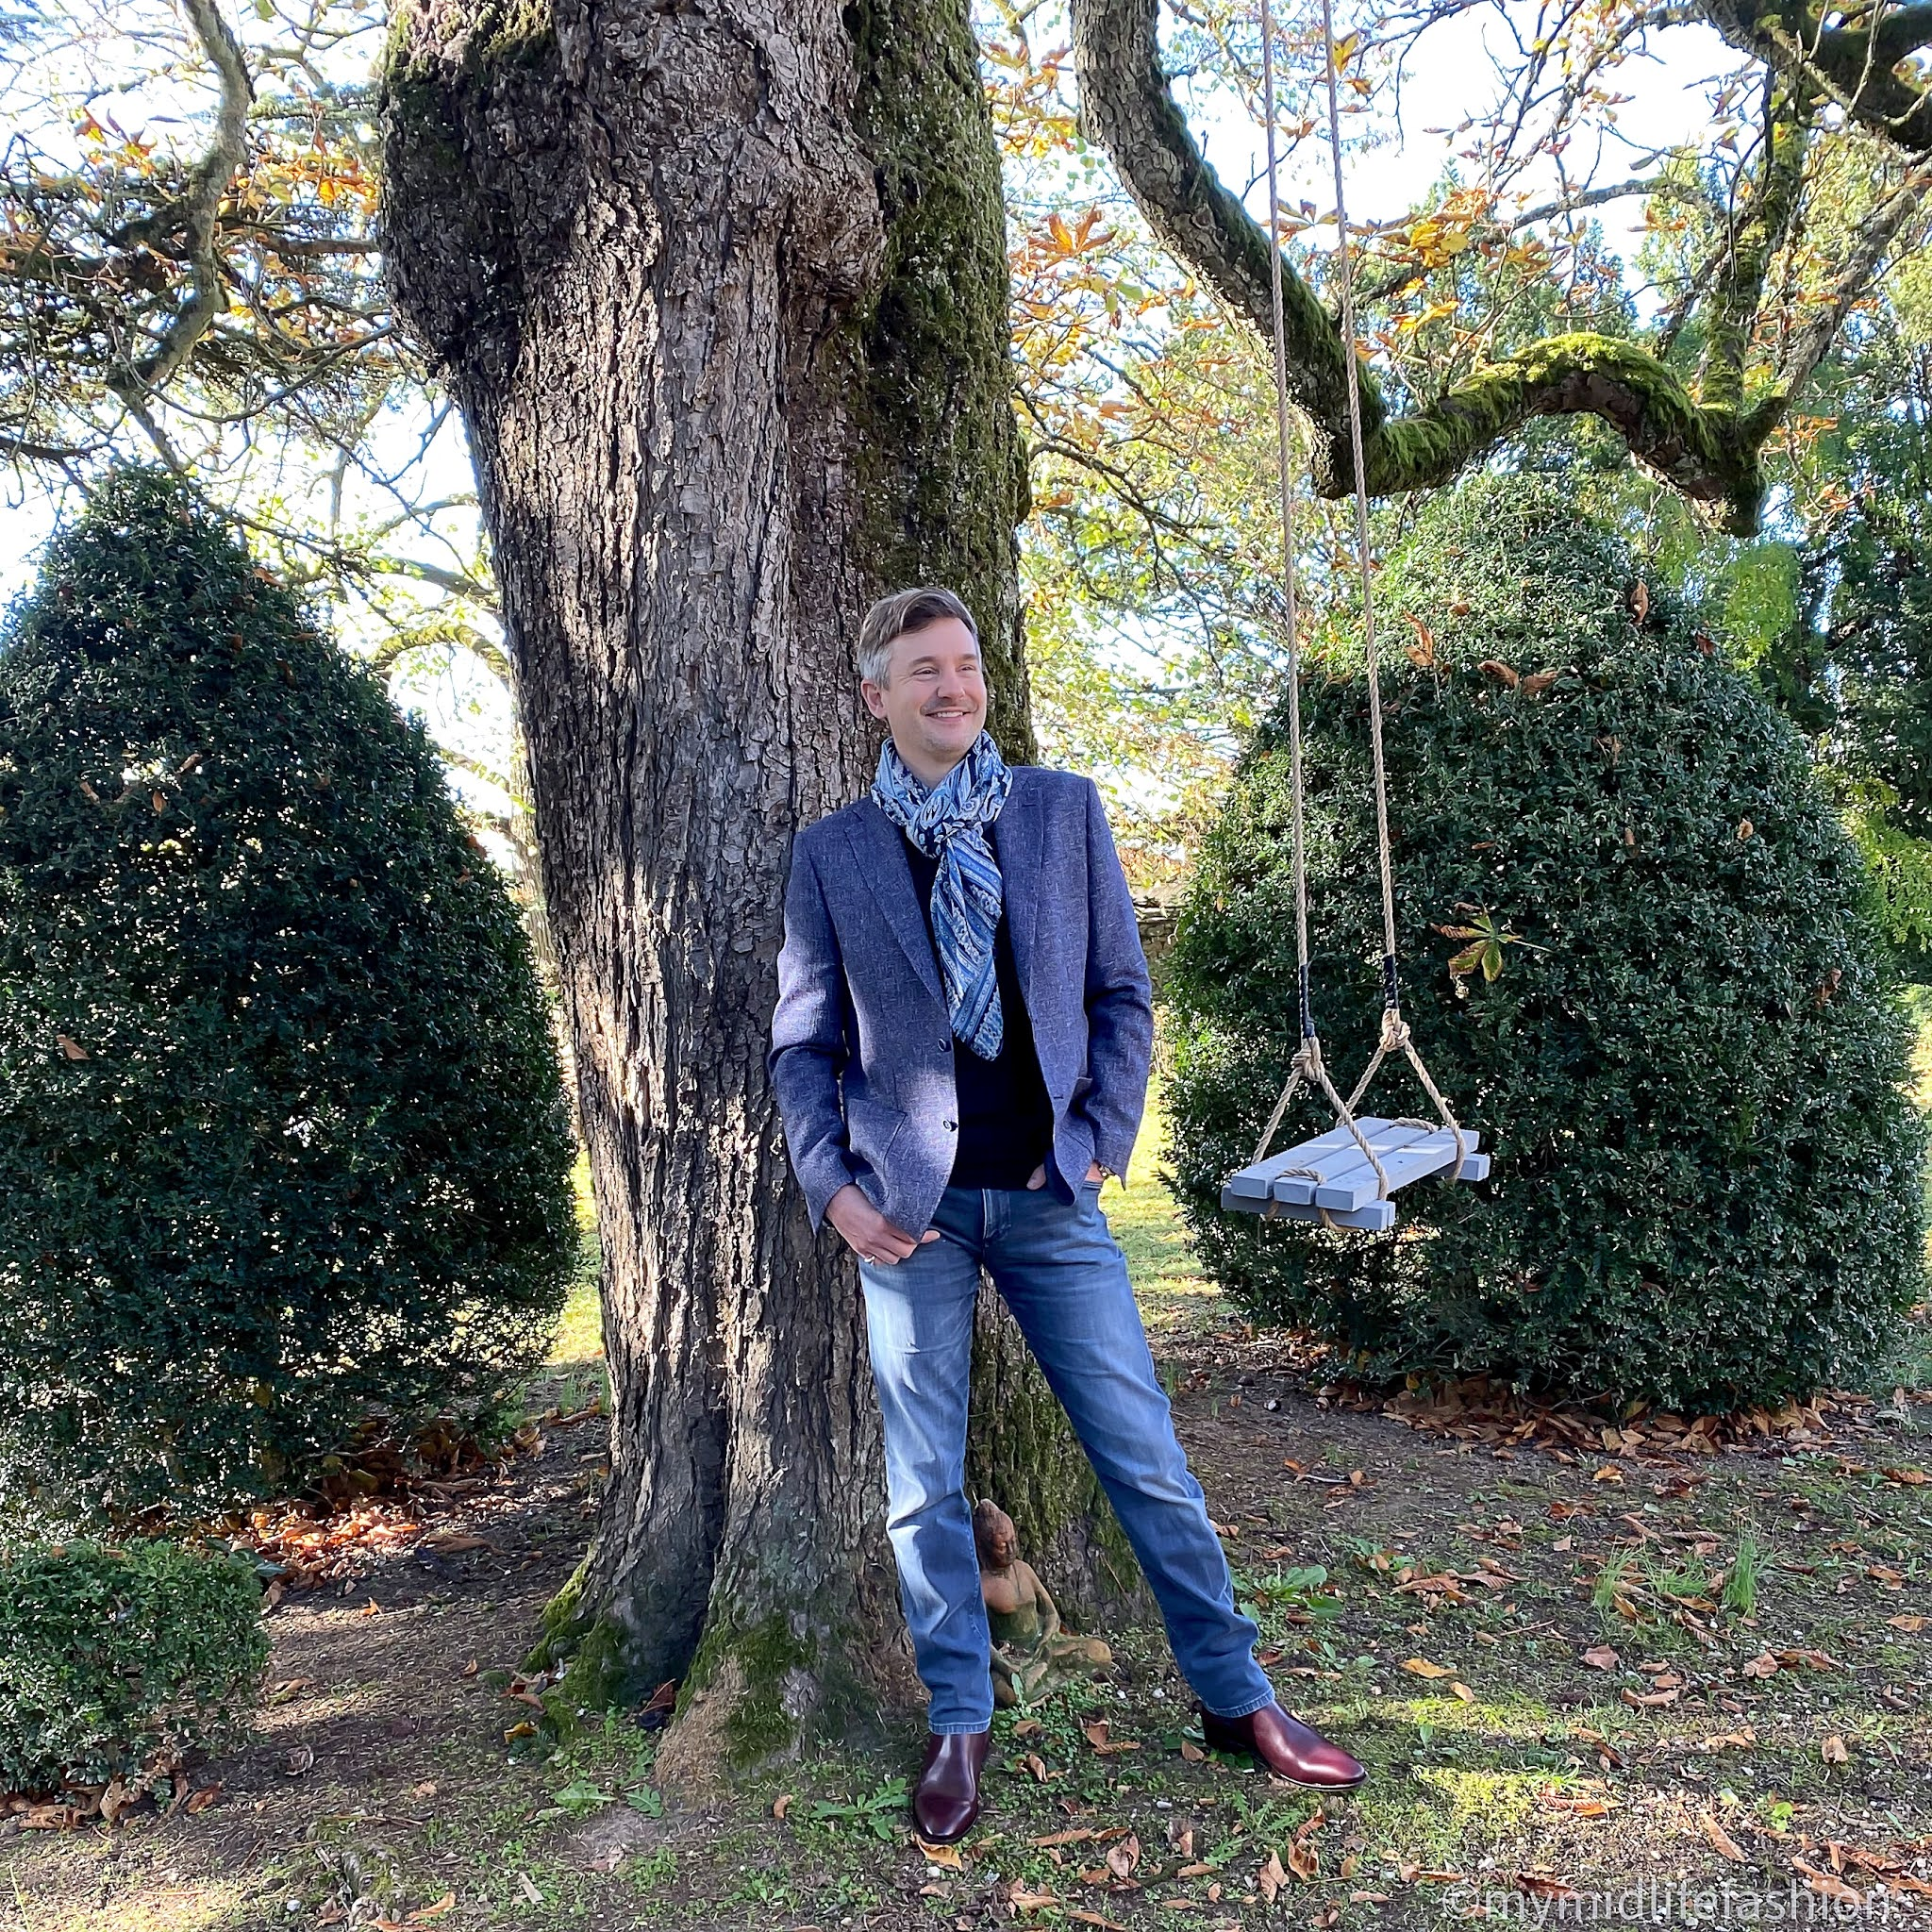 my midlife fashion, hawes and Curtis Italian wool linen blend mens jacket, hawes and Curtis merino wool polo neck jumper, hawes and Curtis navy and blue big paisley scarf, hawes and Curtis mens burgundy leather Chelsea boot